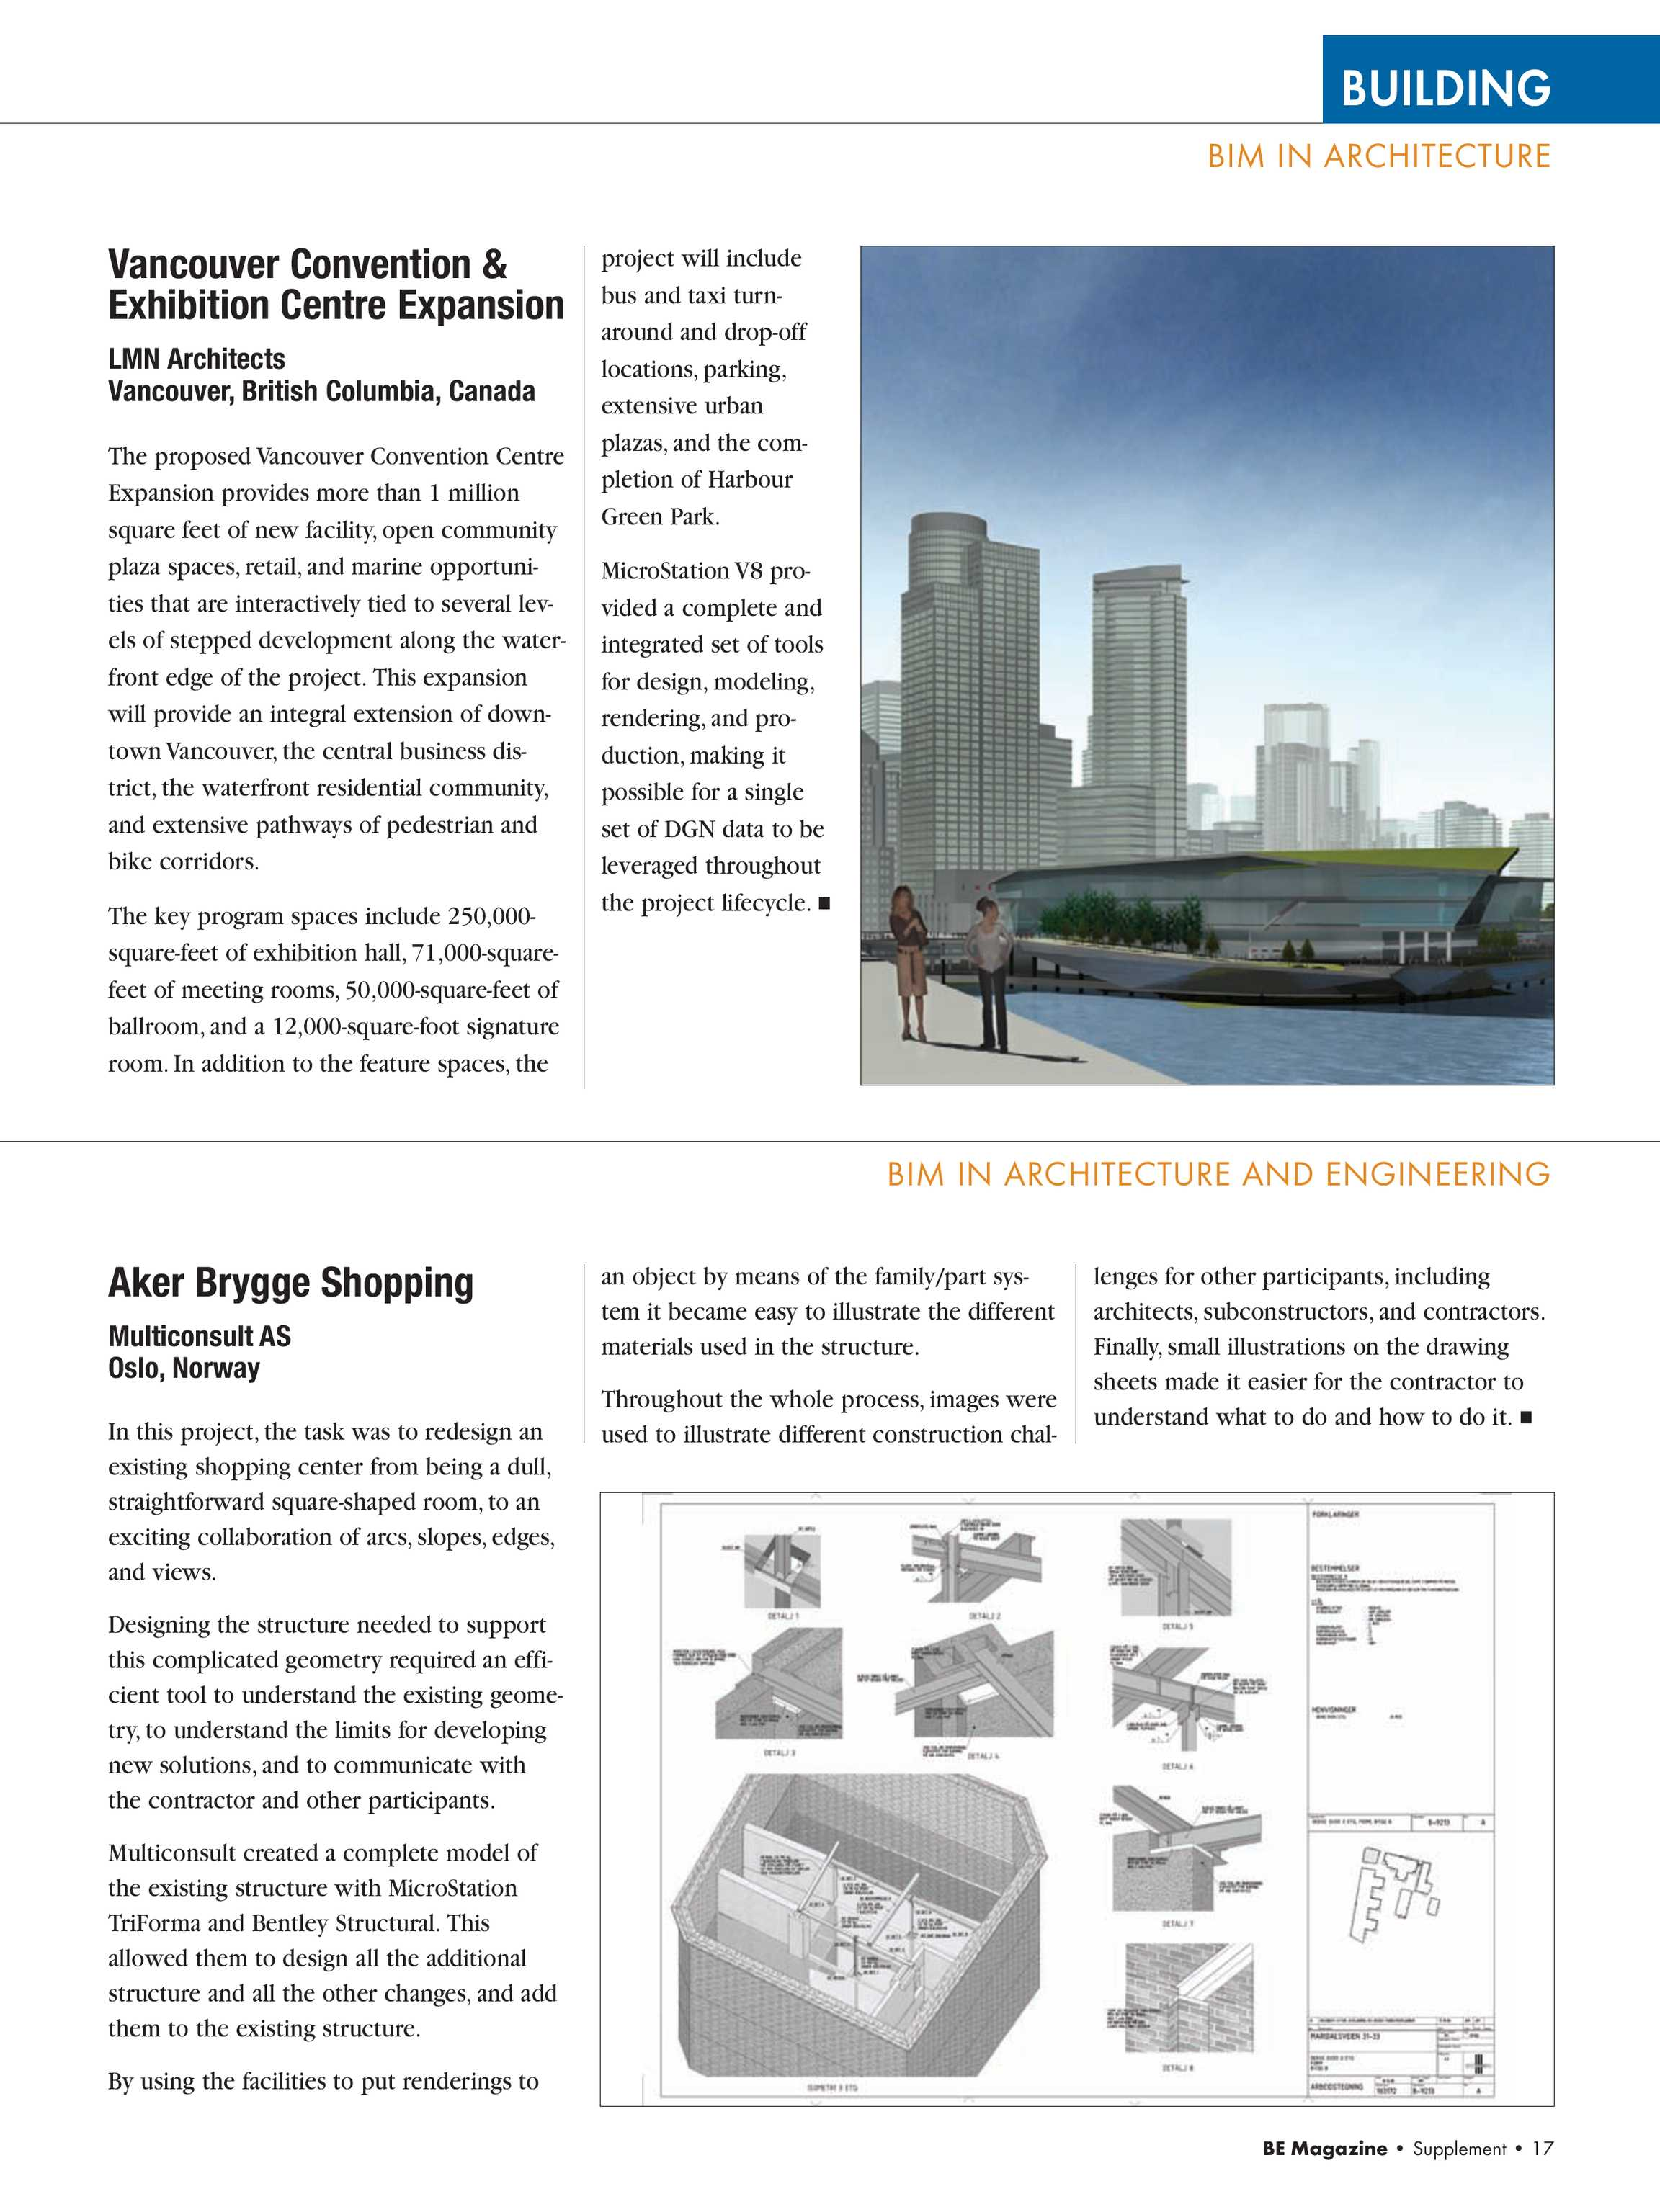 Year In Infrastructure 2004 - page 16